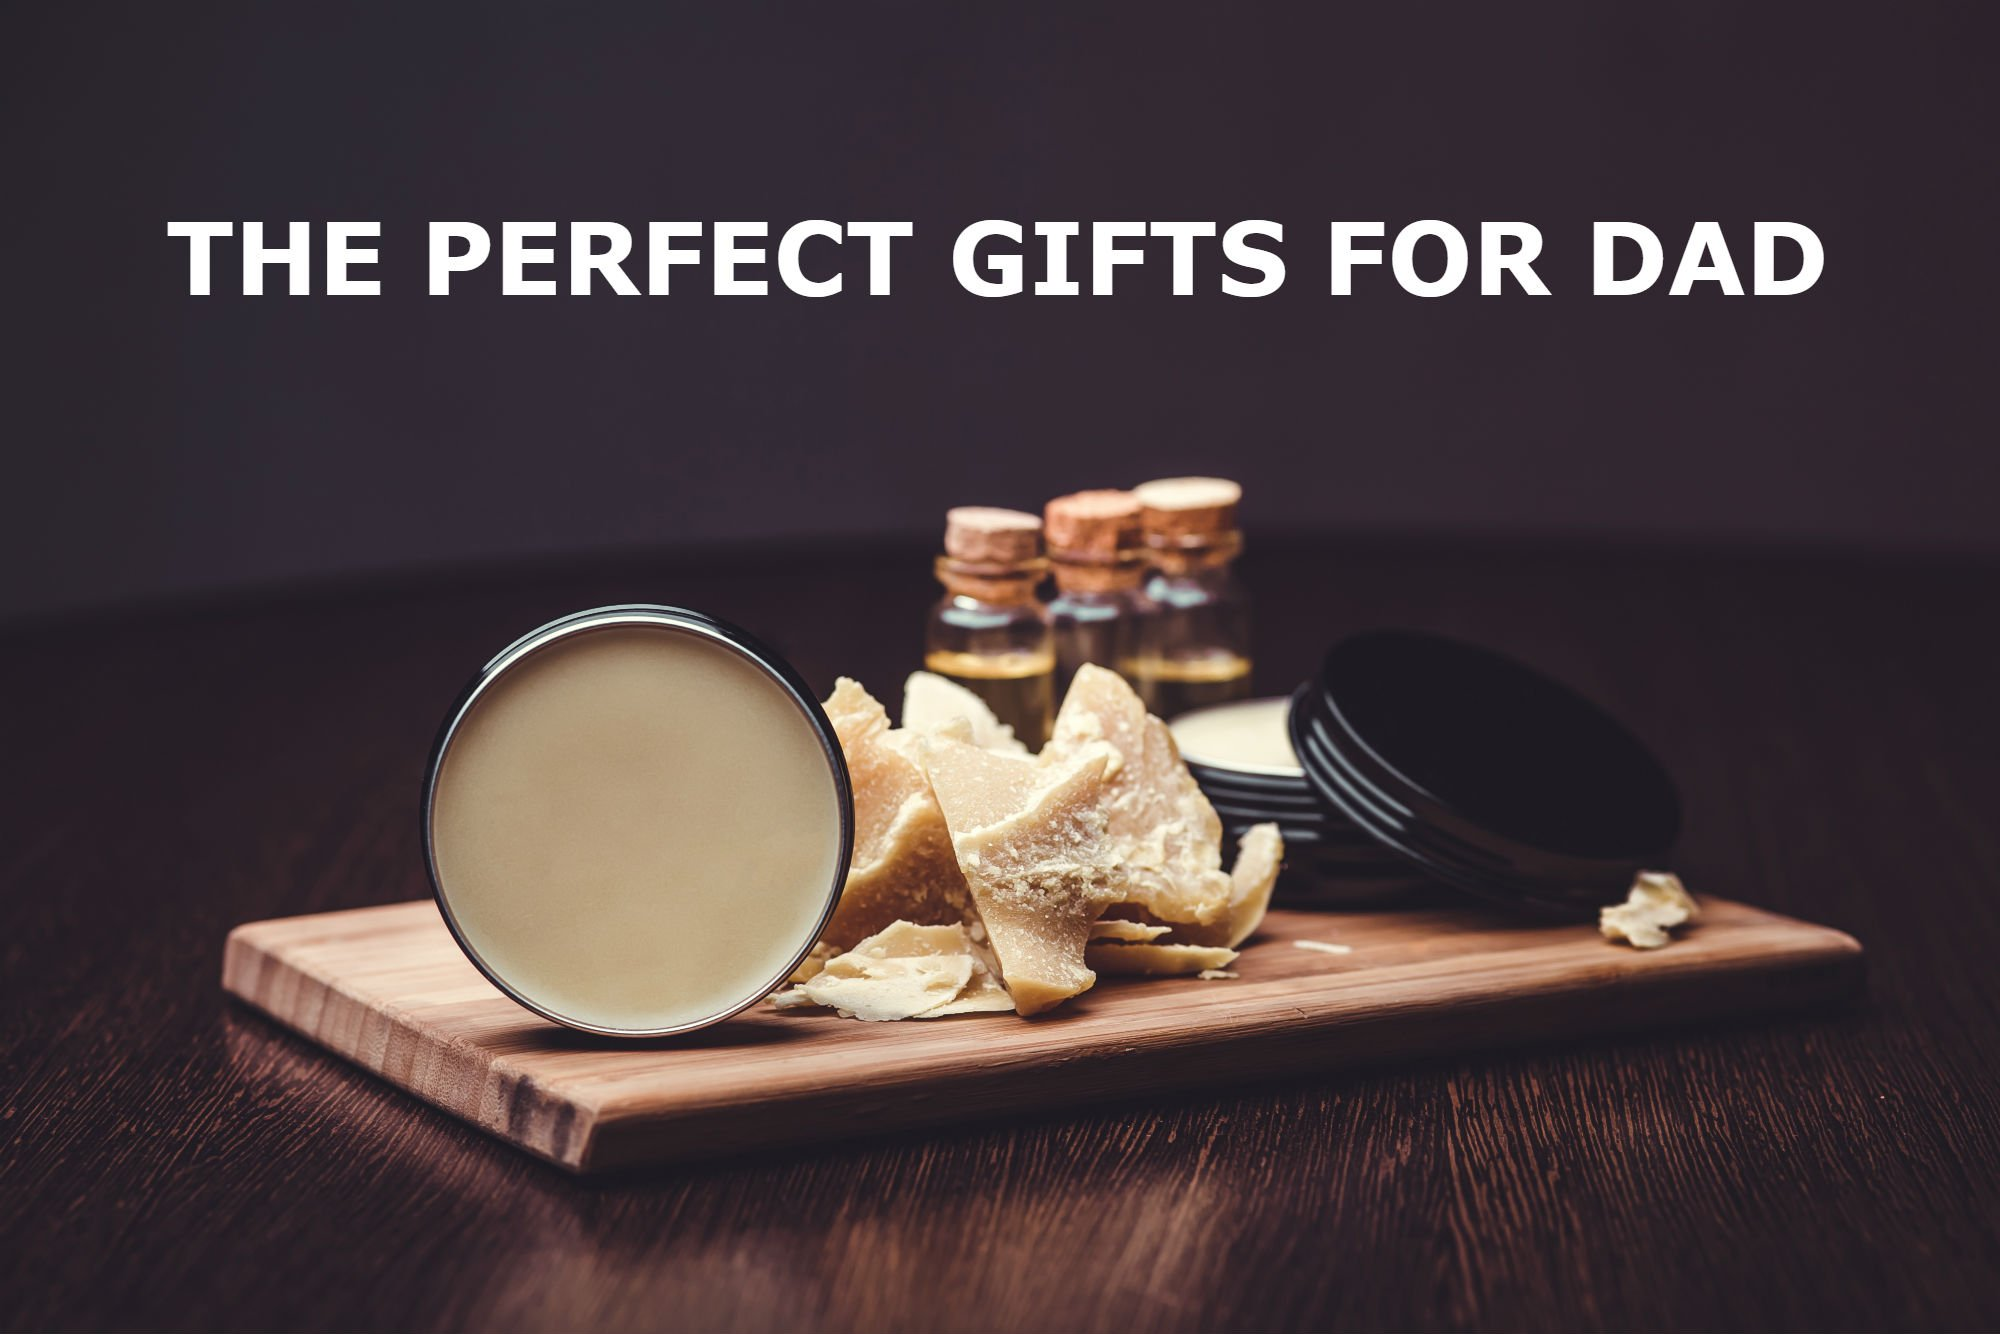 SPUD HOLIDAY GUIDE: GIFTS FOR DADS